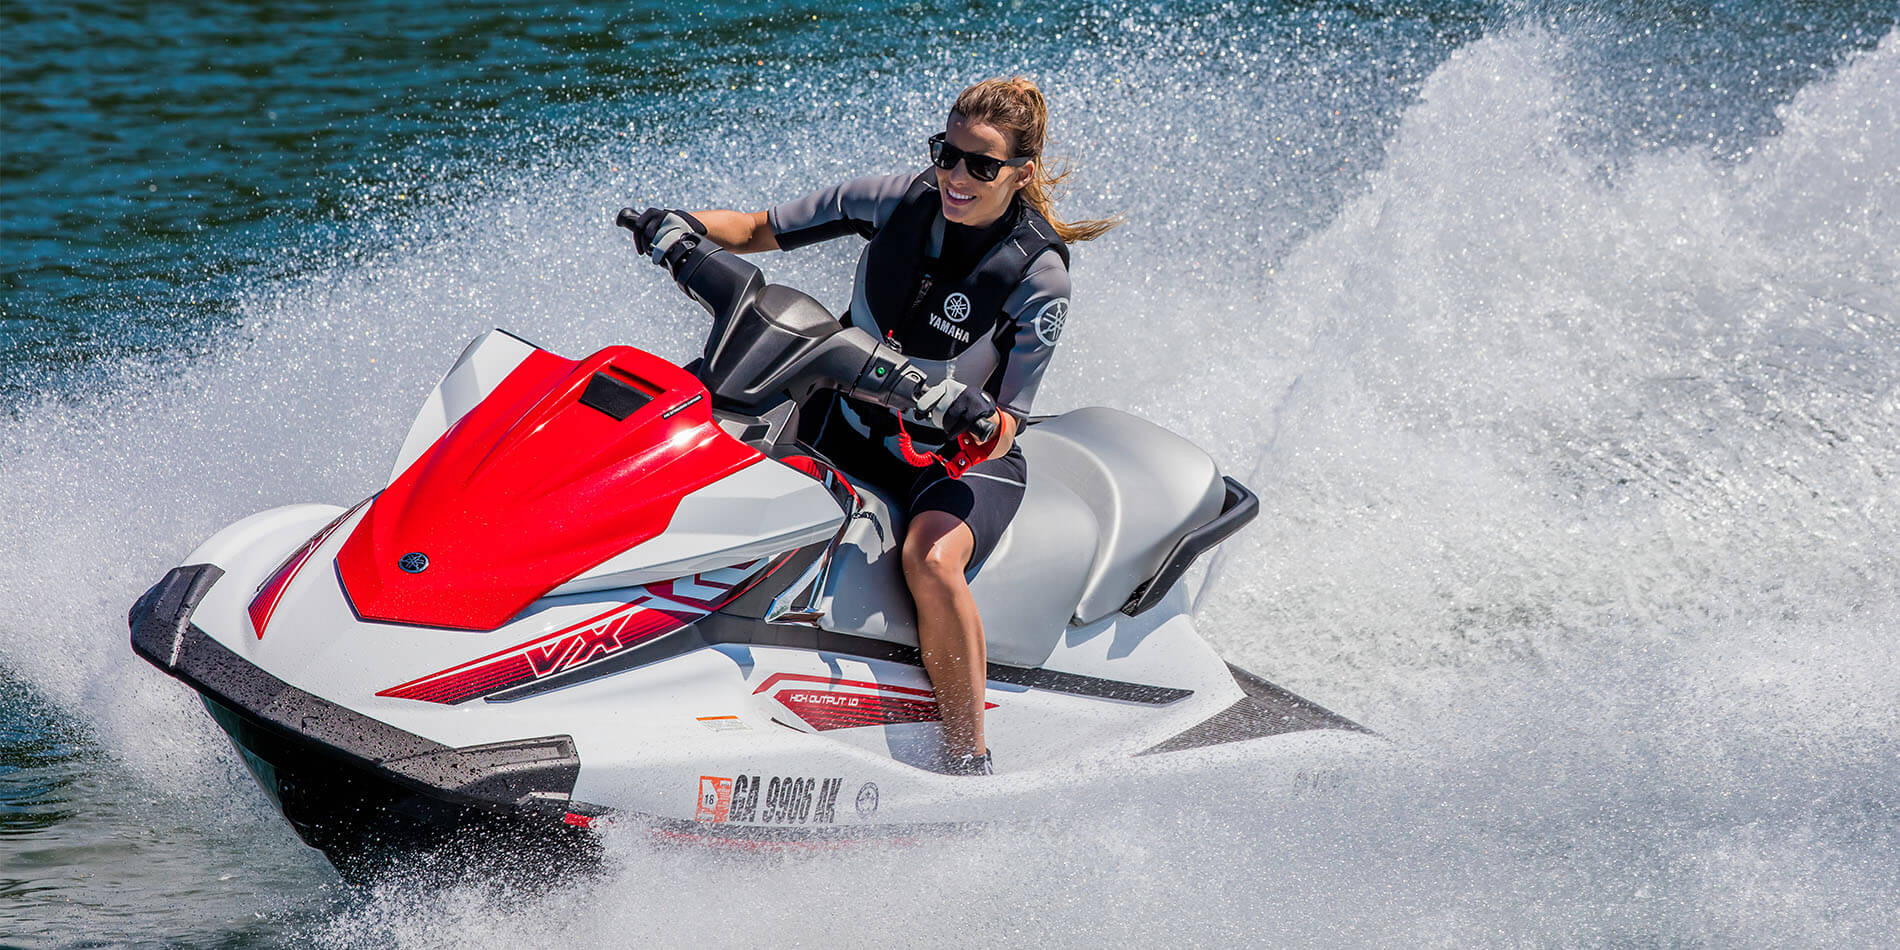 About Us All Day 99 Only Bullhead Jet Ski Rental 5 Minute Away From Laughlin Nevada Contact 928 444 5465